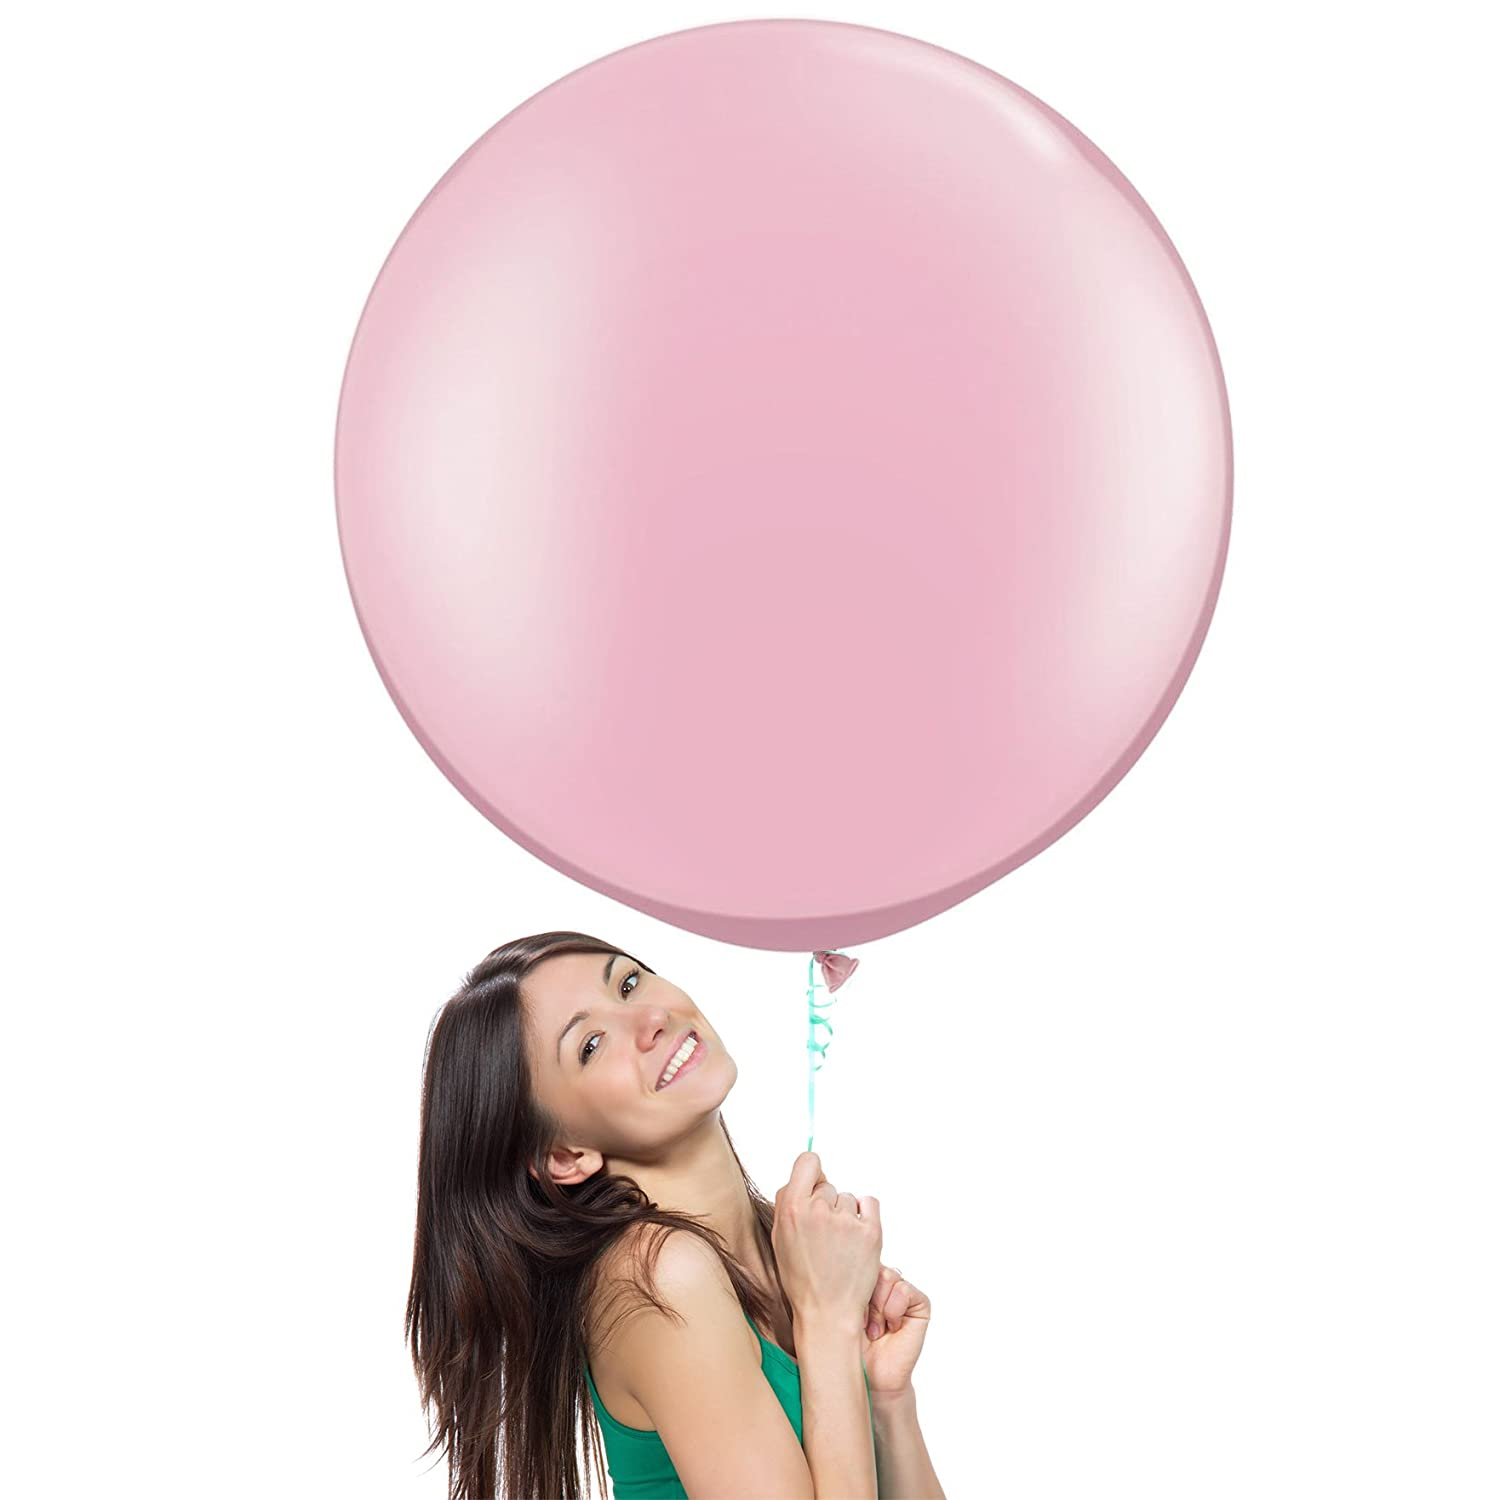 (90cm Pack of 3, Baby Pink) - 90cm Giant Jumbo Latex Balloons (Premium Helium Quality), Pack of 3, Round Shape - Baby Pink   B072DTM5VQ